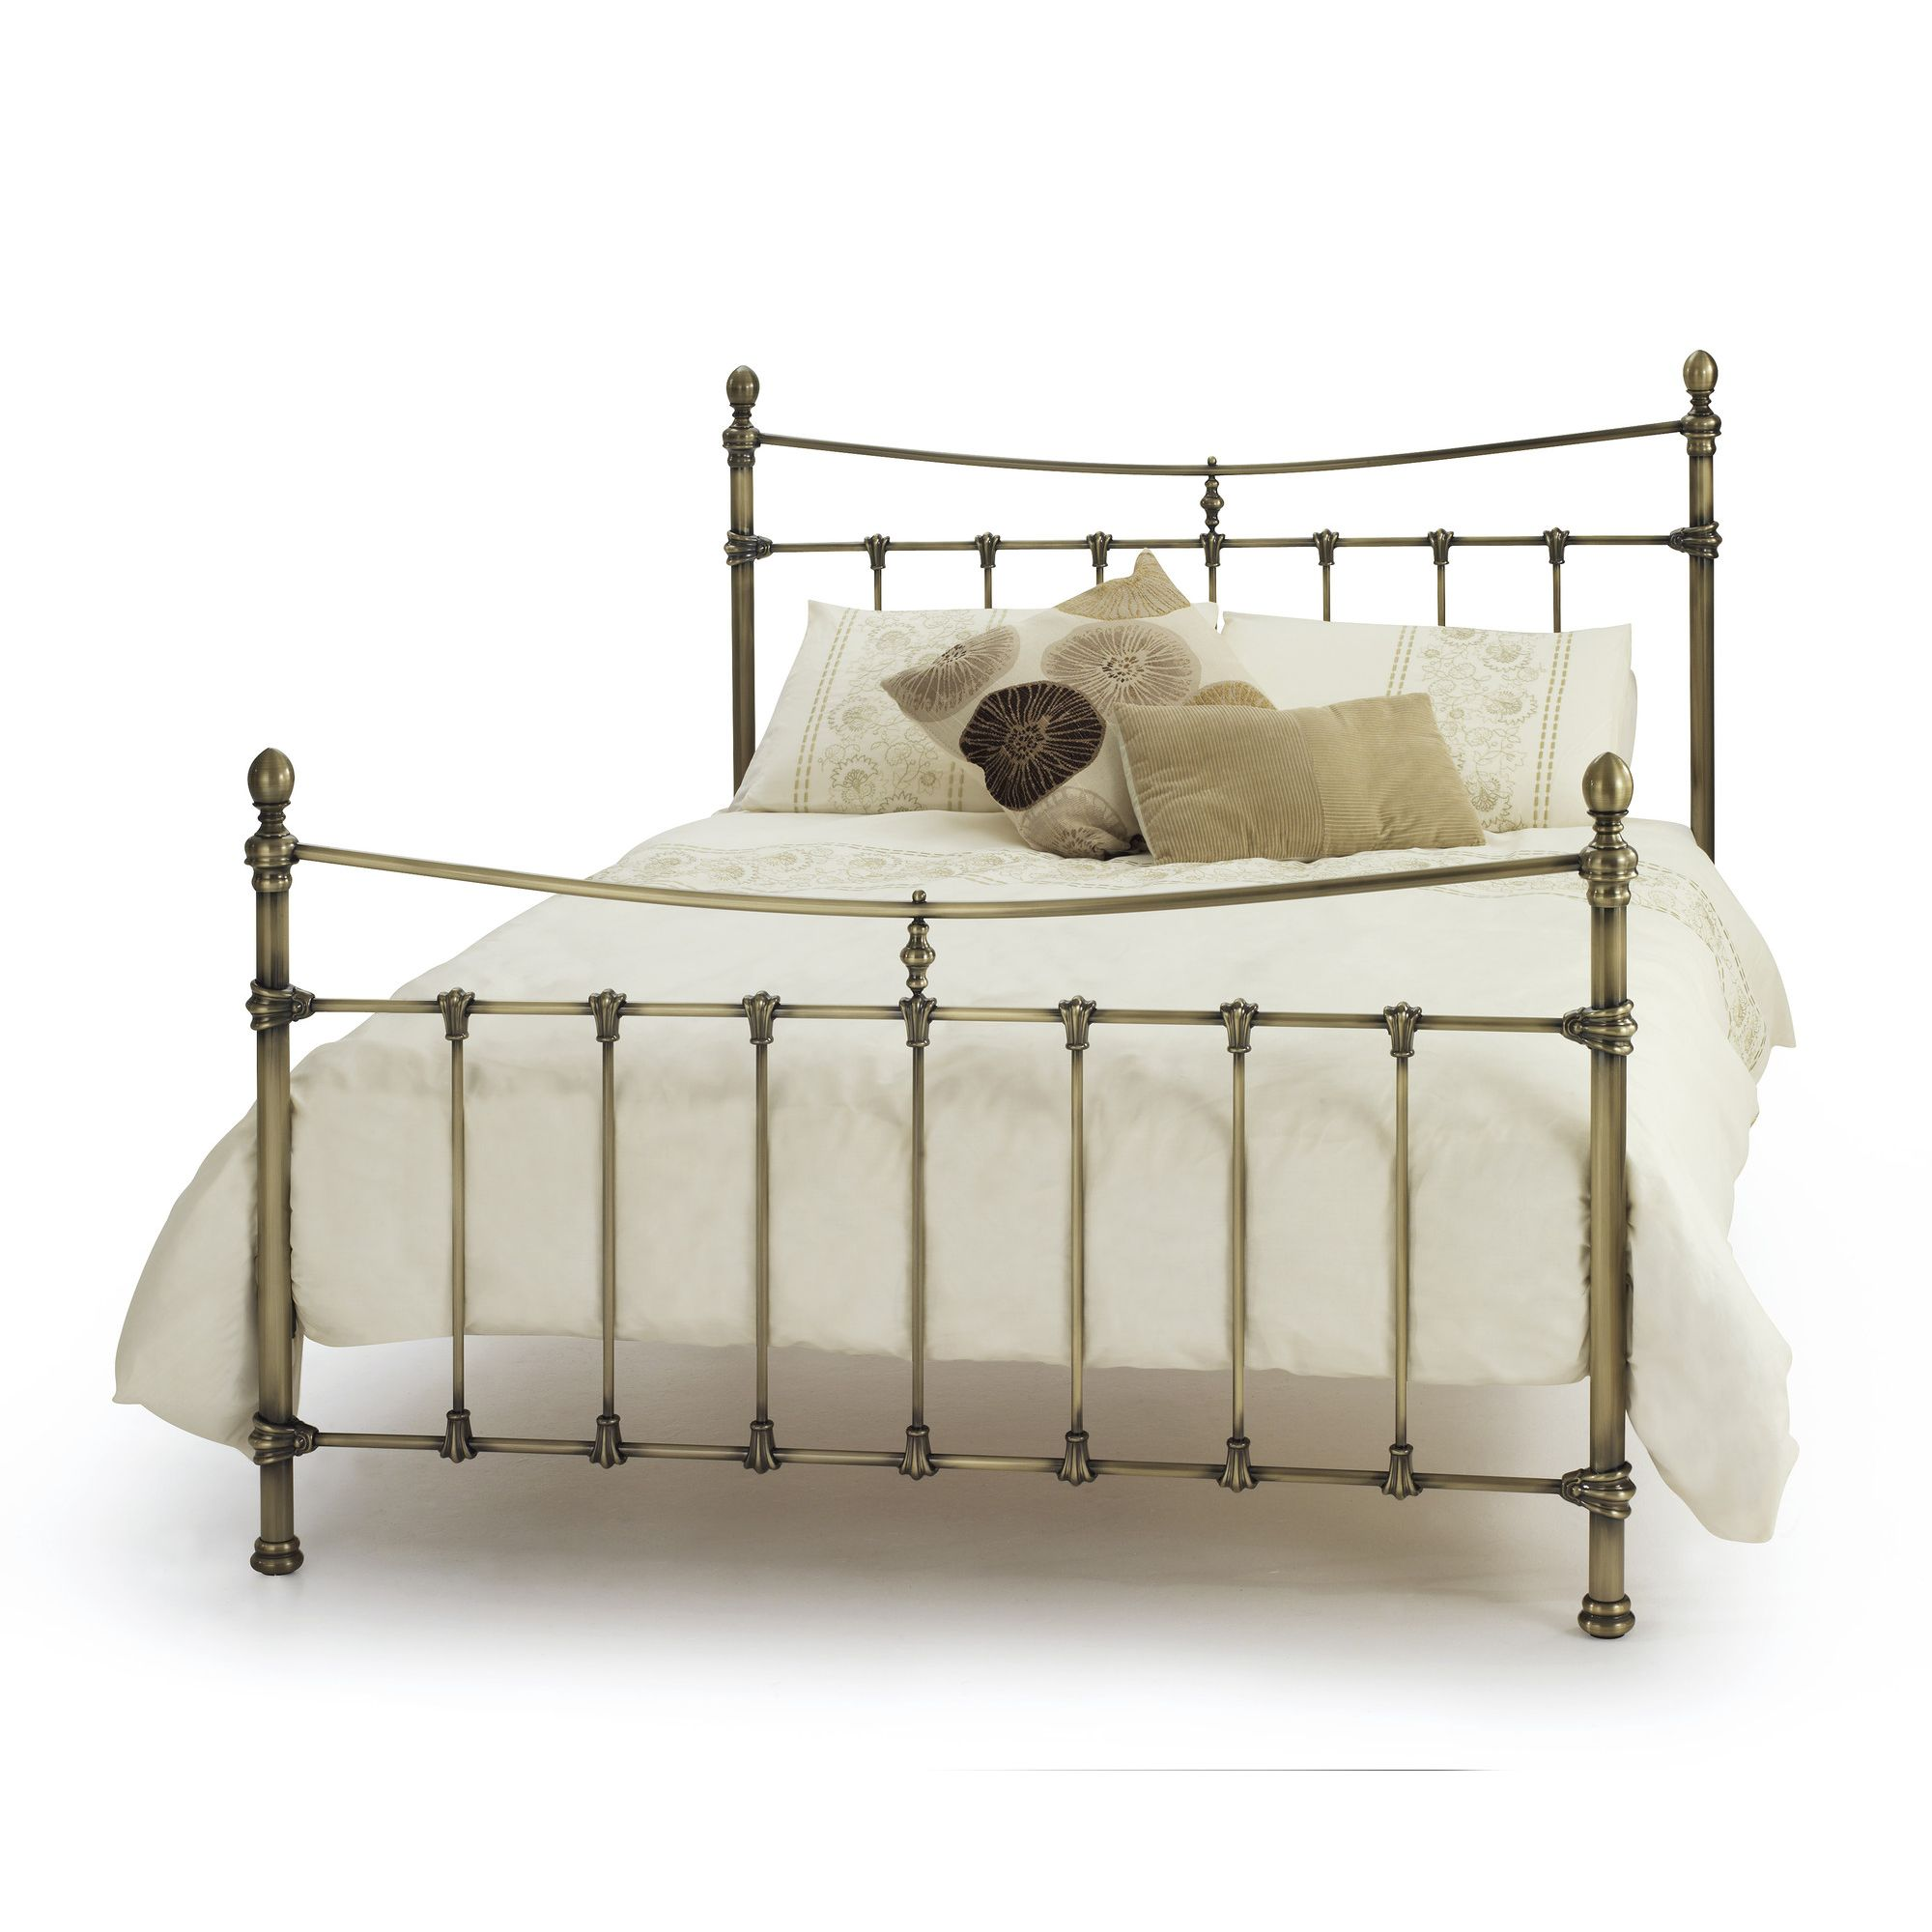 Serene Furnishings Olivia Bed Frame - King at Tesco Direct